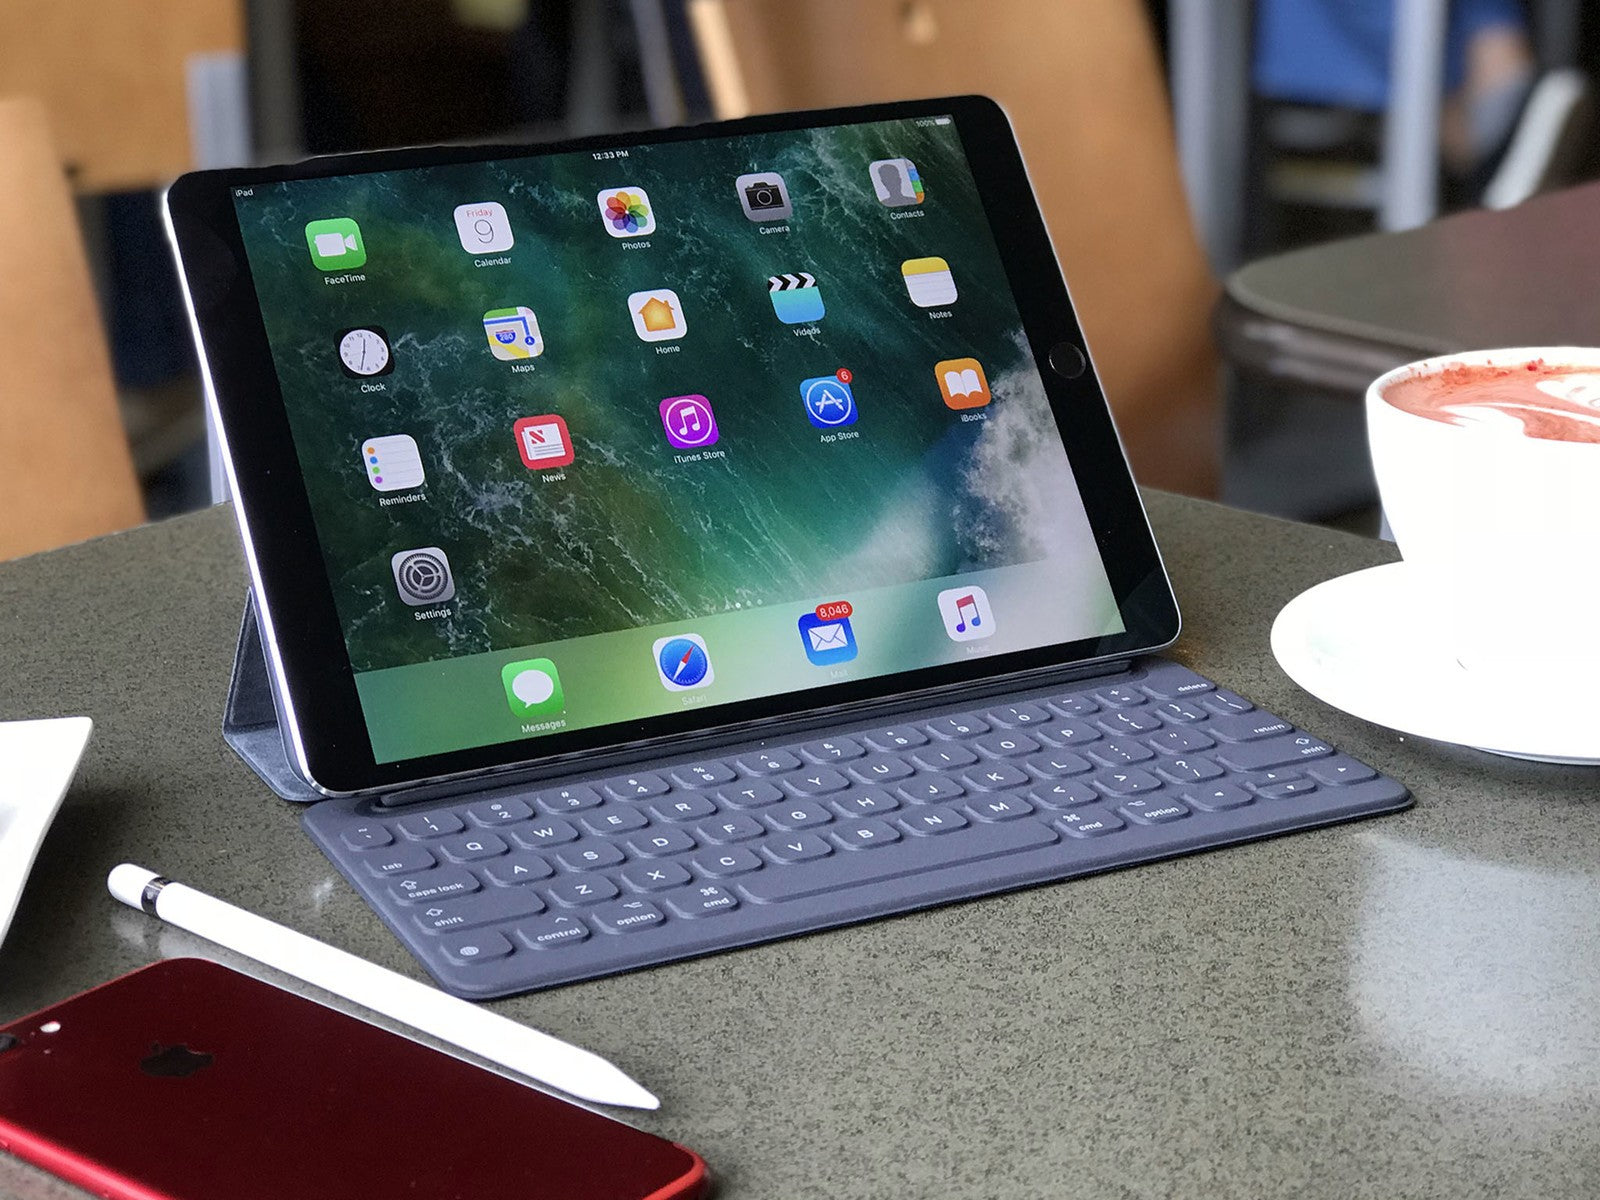 How Do I Charge 2018 iPad Pro Faster? – Zendure